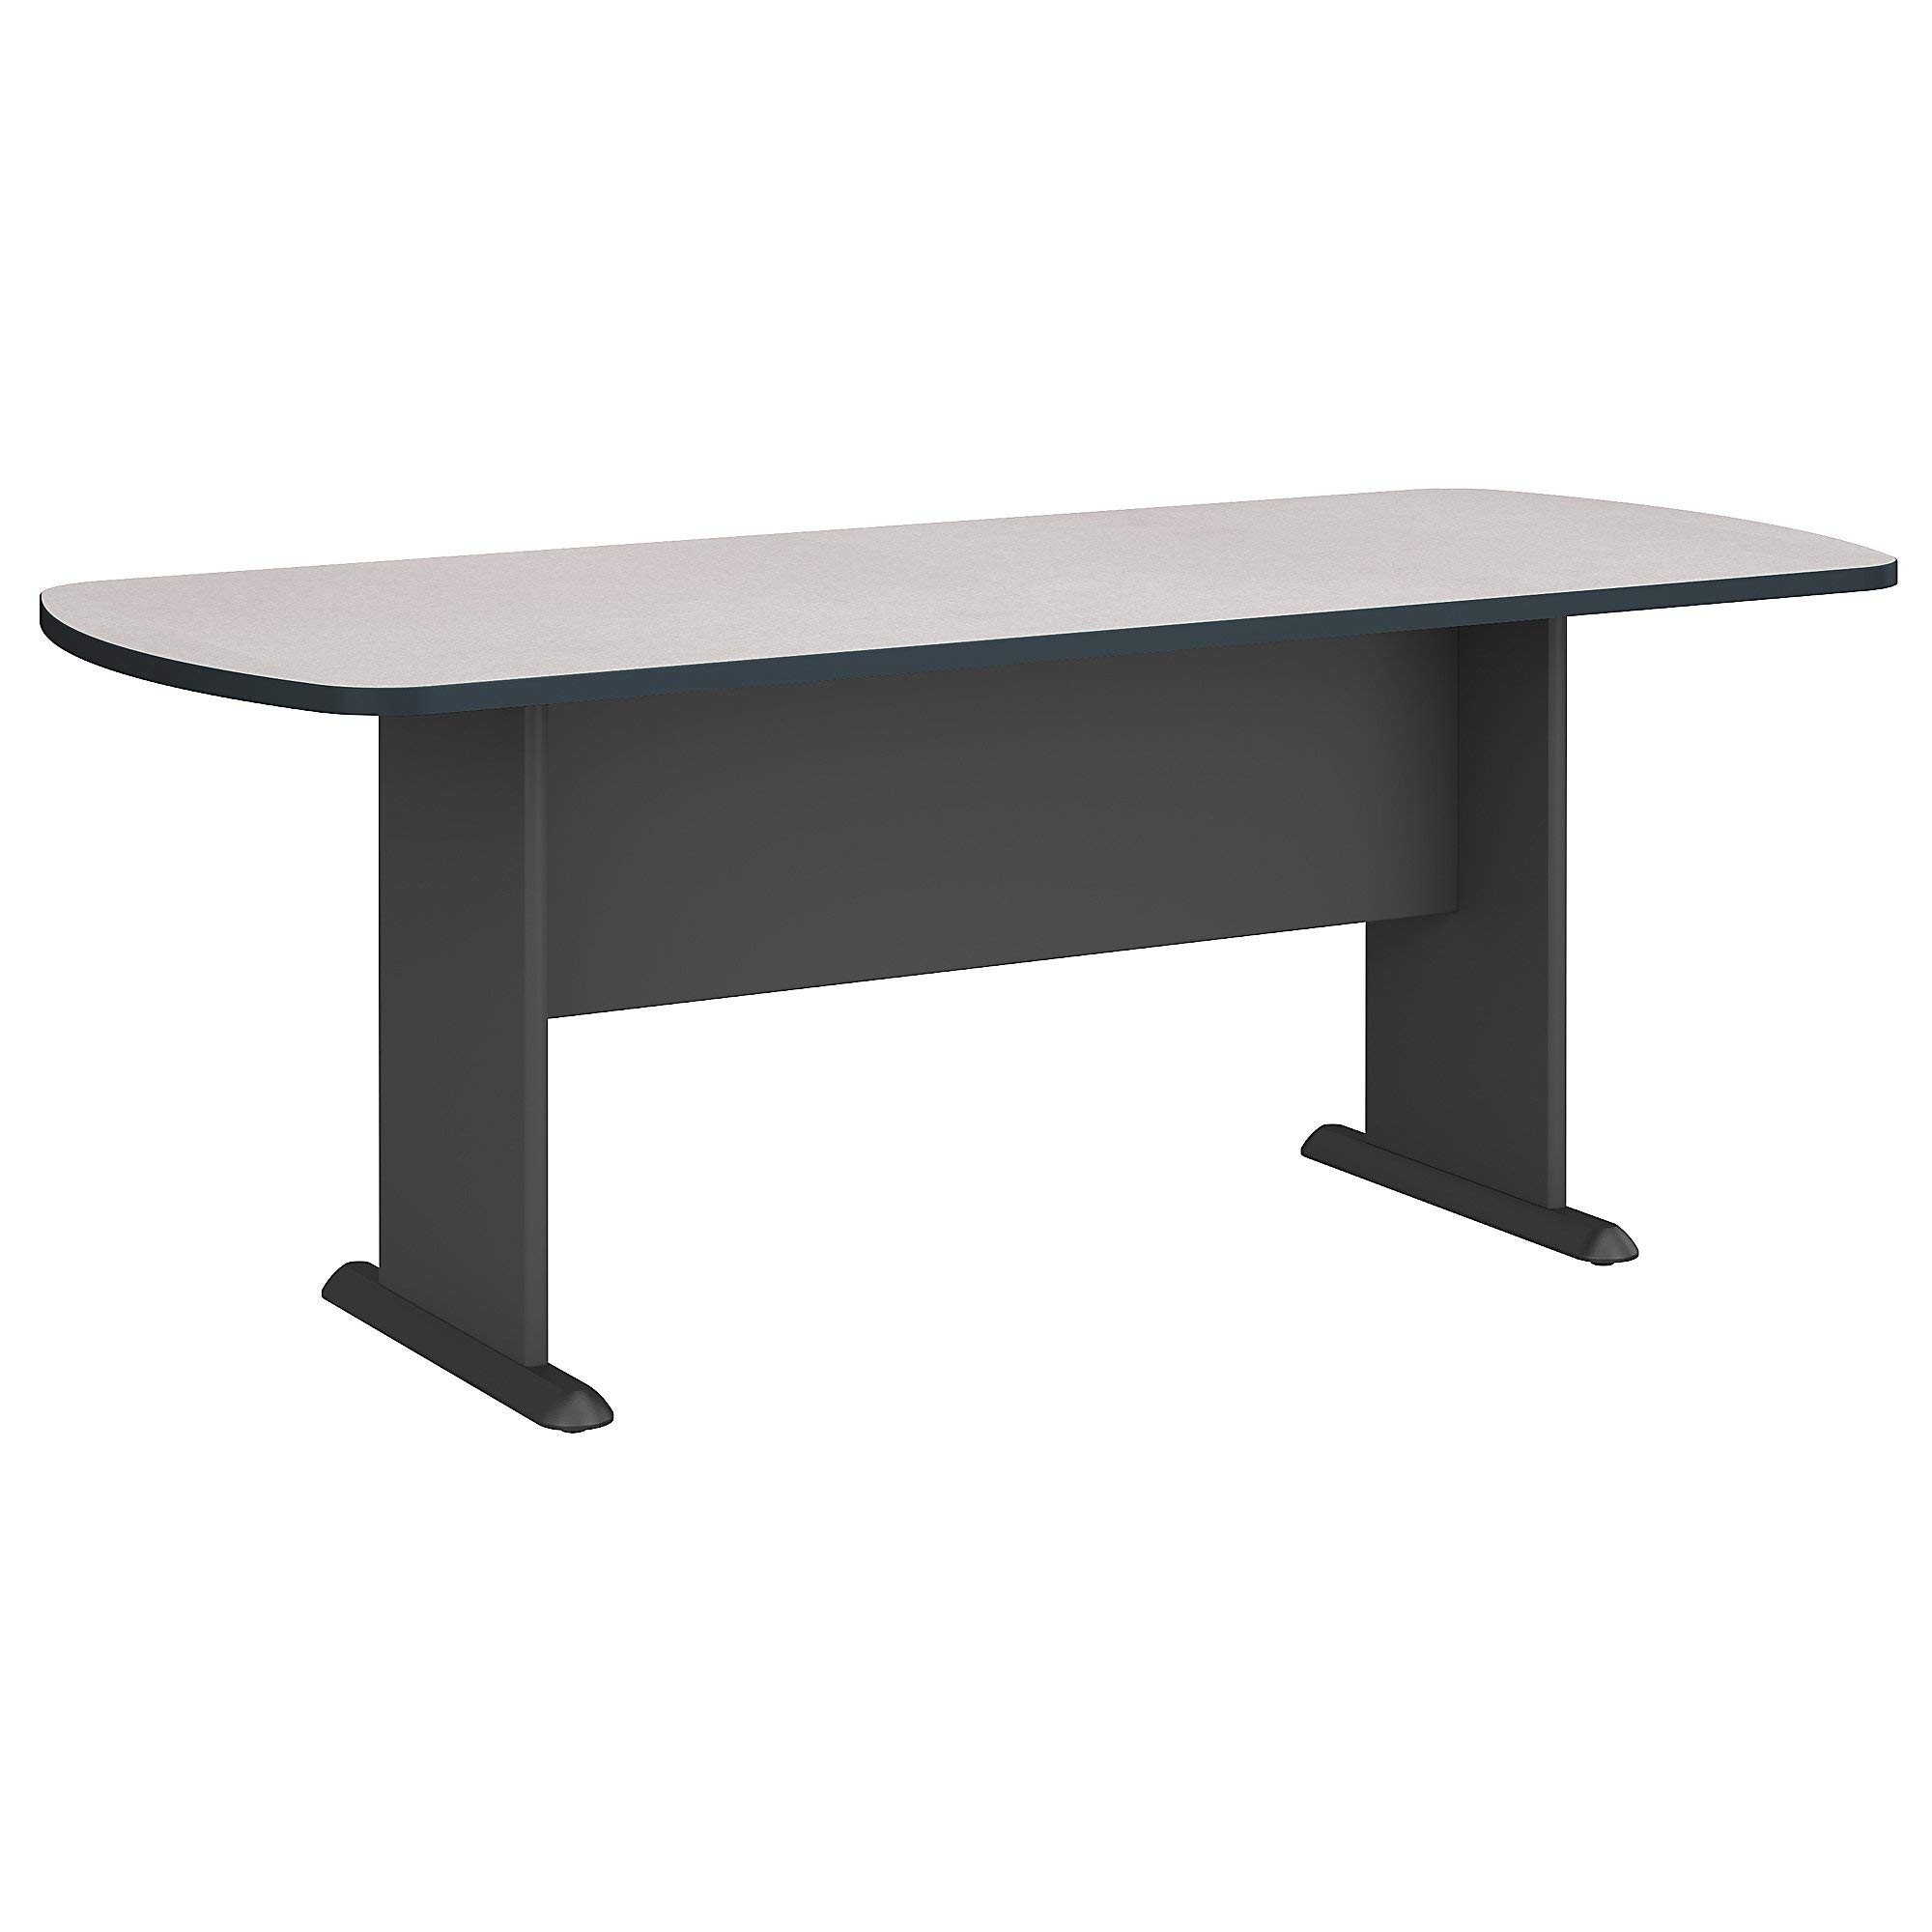 Bush Business Furniture Series A & C 79W x 34D Racetrack Oval Conference Table in Slate by Bush Business Furniture (Image #1)